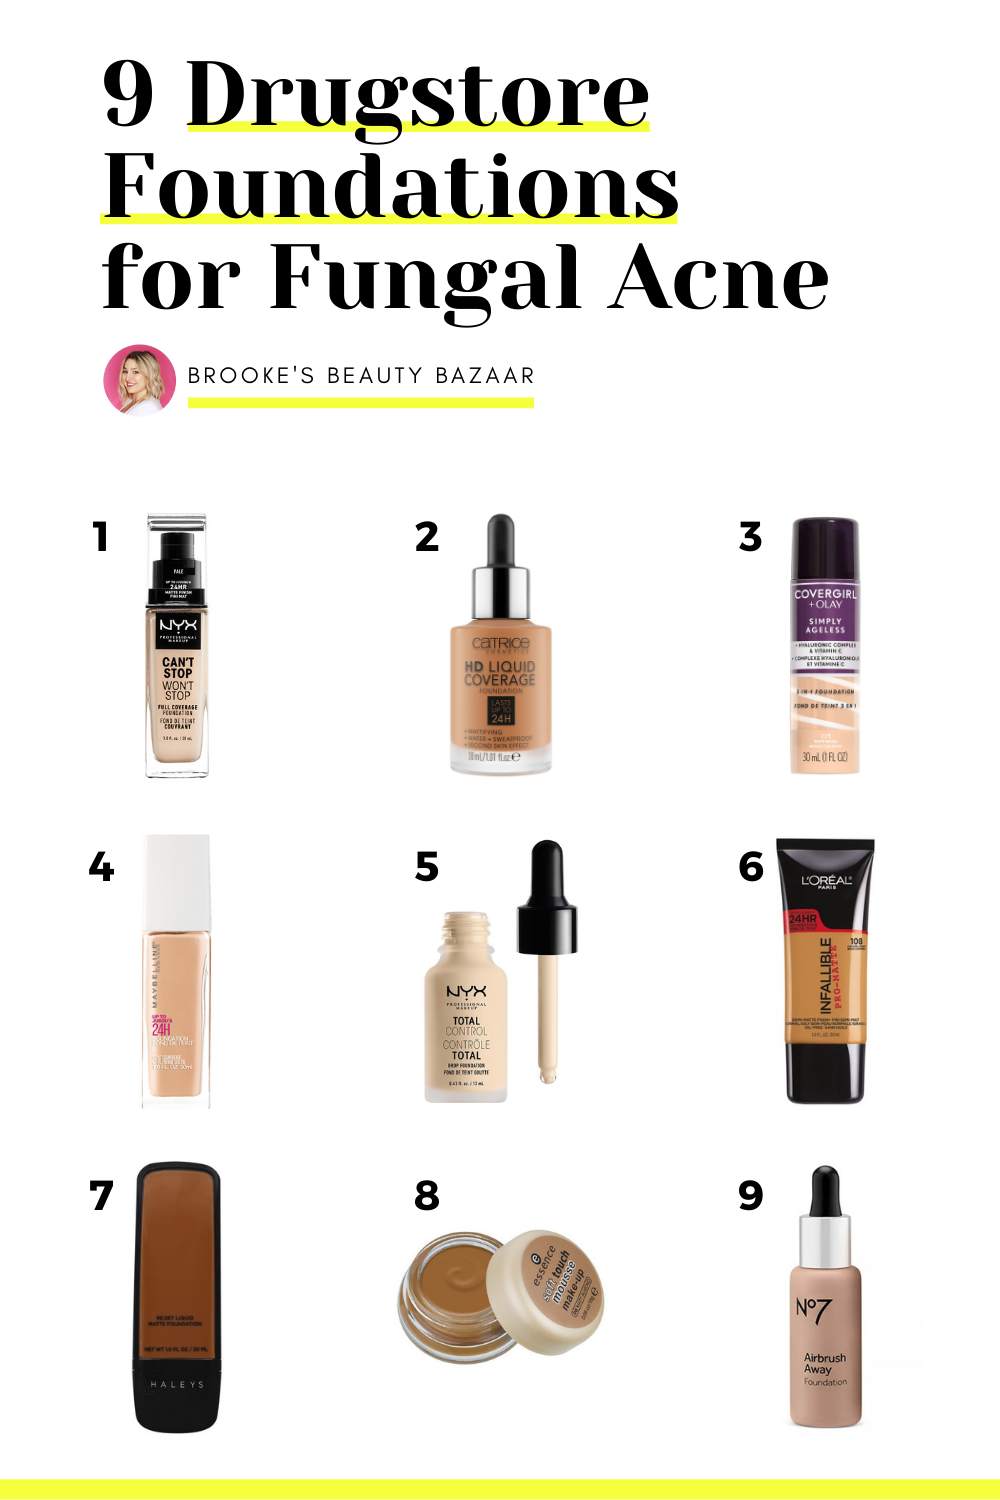 These Are The 9 Best Drugstore Makeup Foundations For Fungal Acne Brooke S Beauty Bazaar